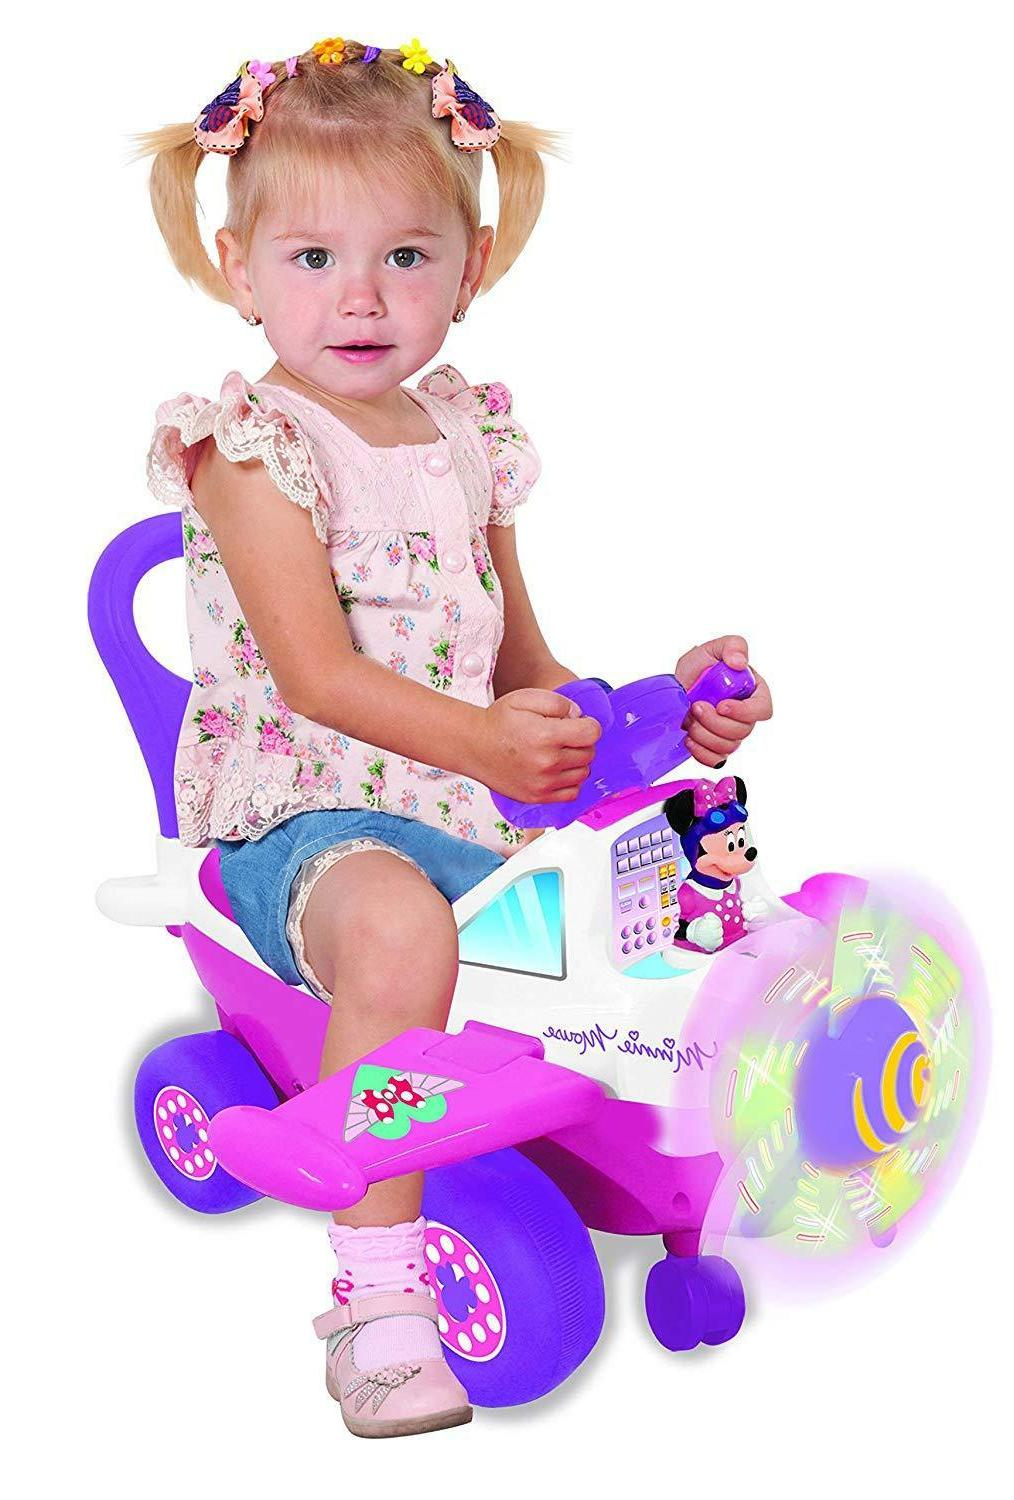 Baby Ride On Toys For Toddler Girls Riding Wheels Monnie 1 2